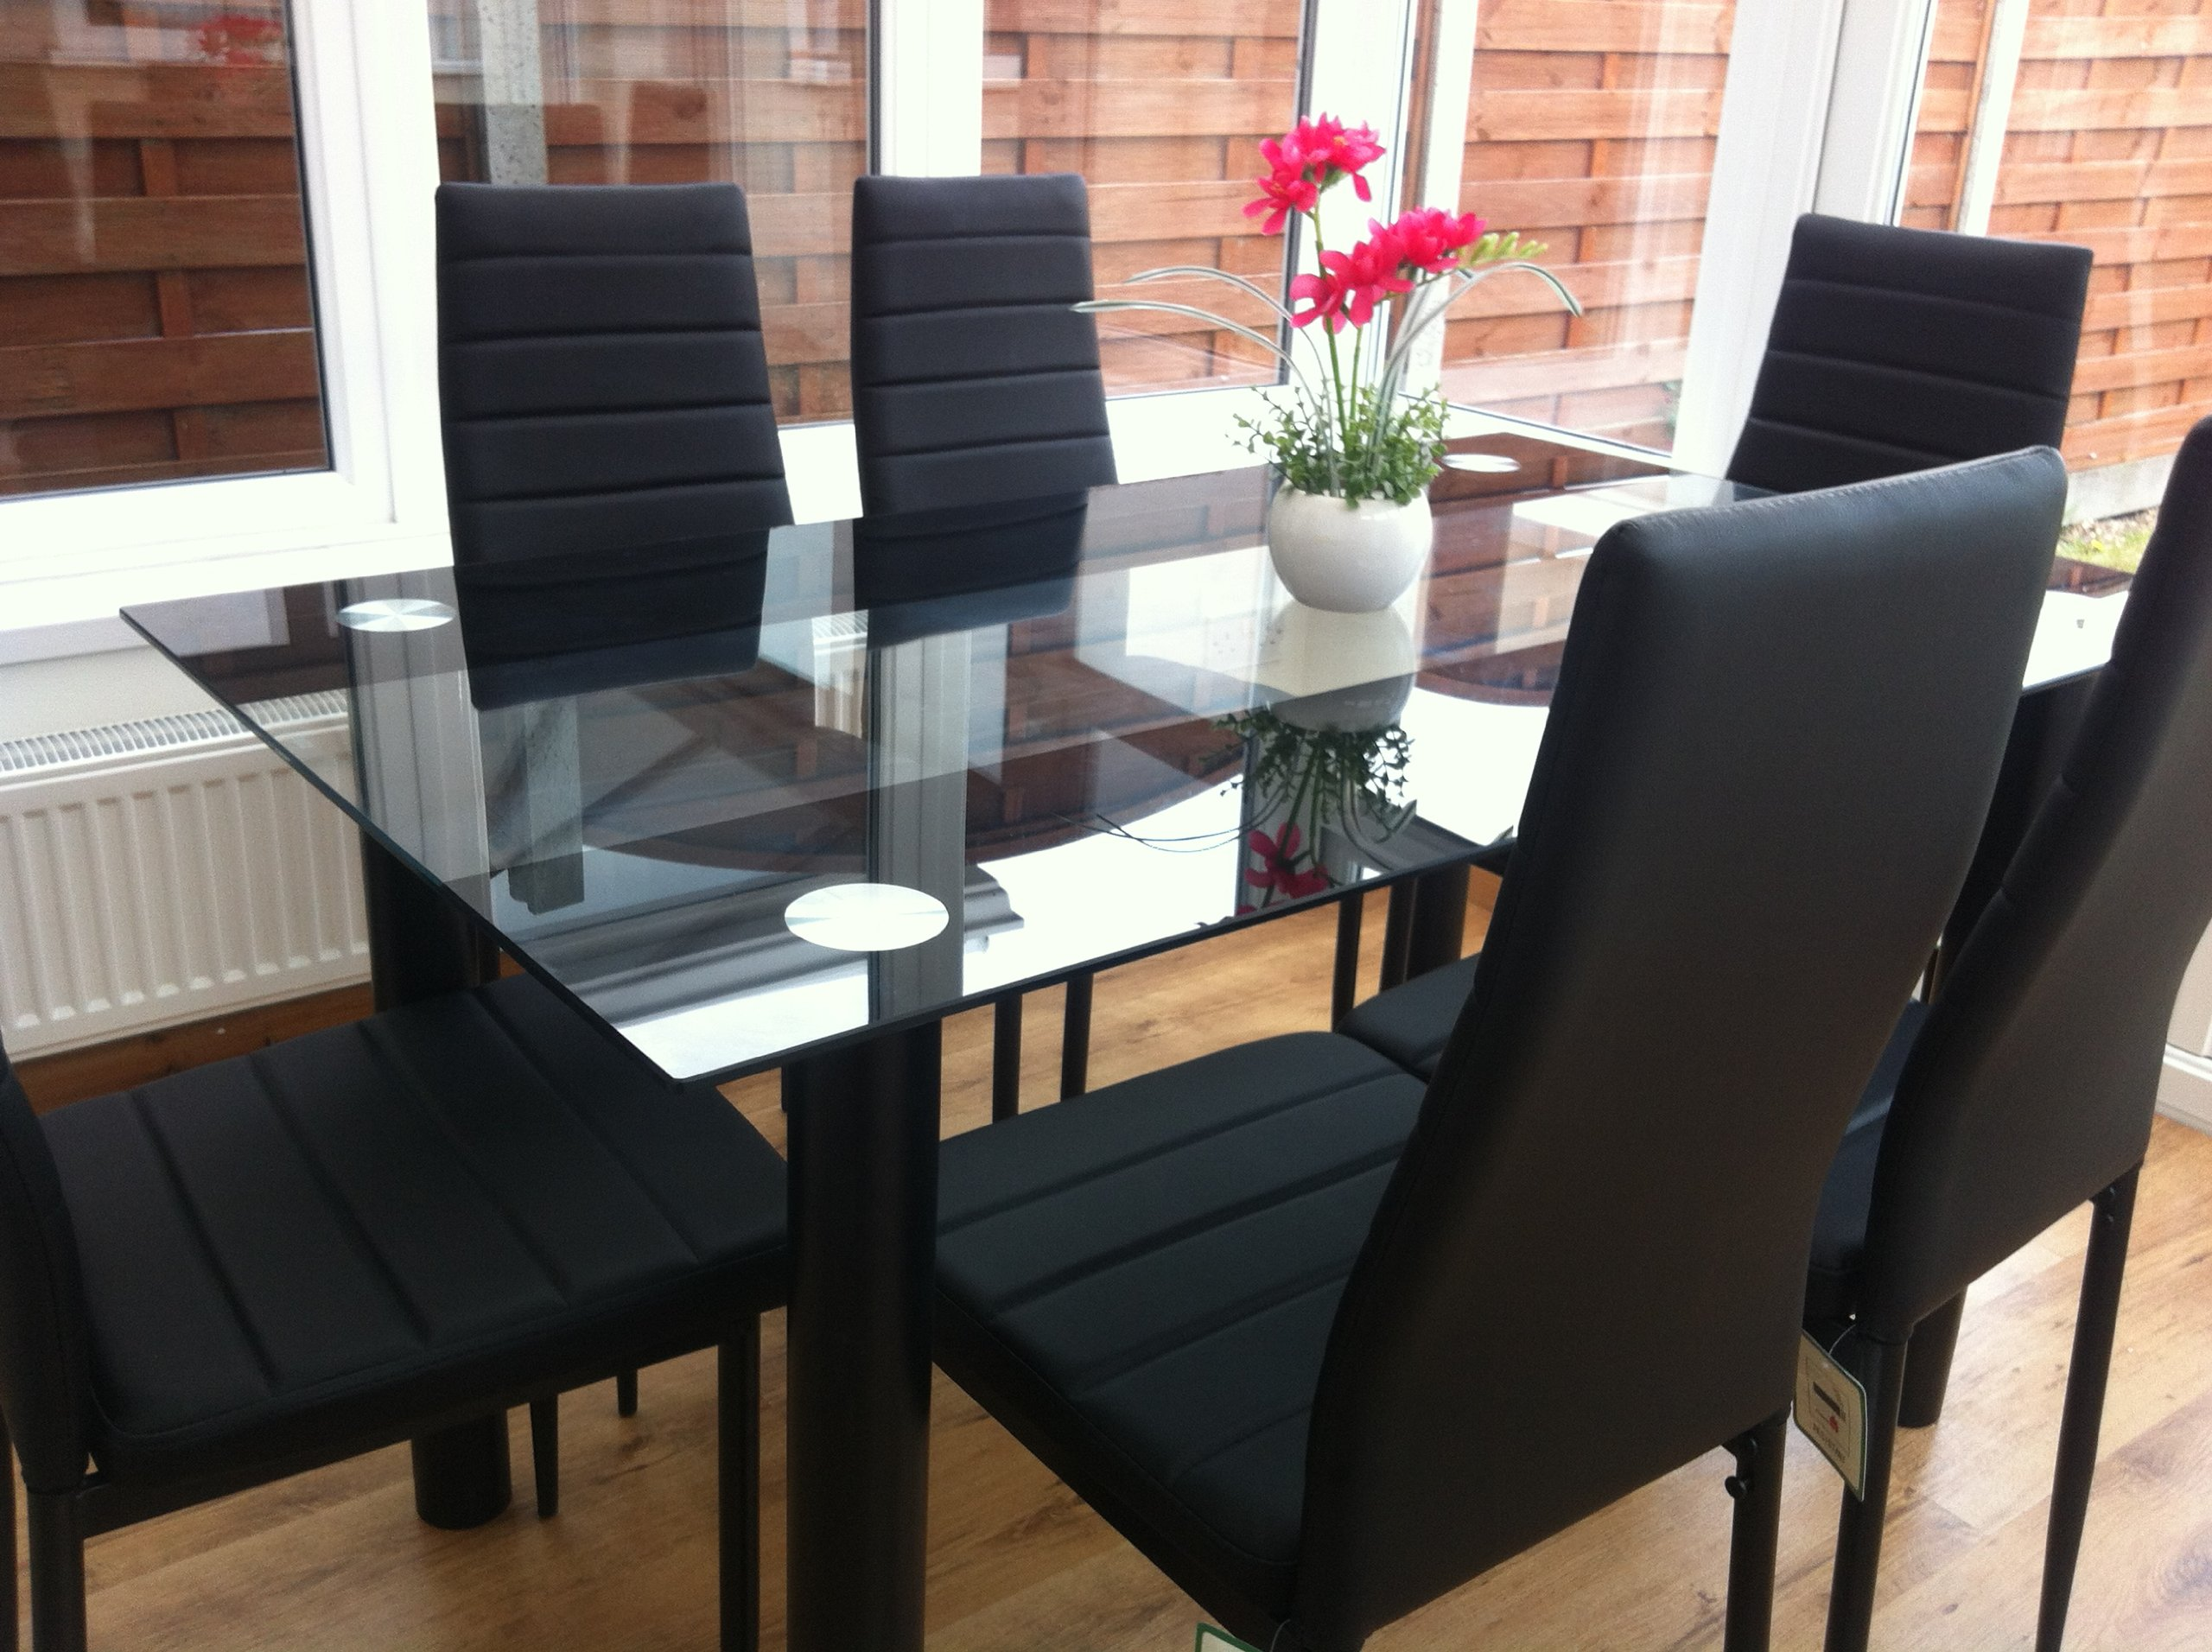 KOSY KOALA Dining Table and Chairs Set of 6 or 4,Tempered Glass Kitchen Black Dining Table with 6 or 4 Faux Leather Padded Chairs Kitchen Dining Table Set